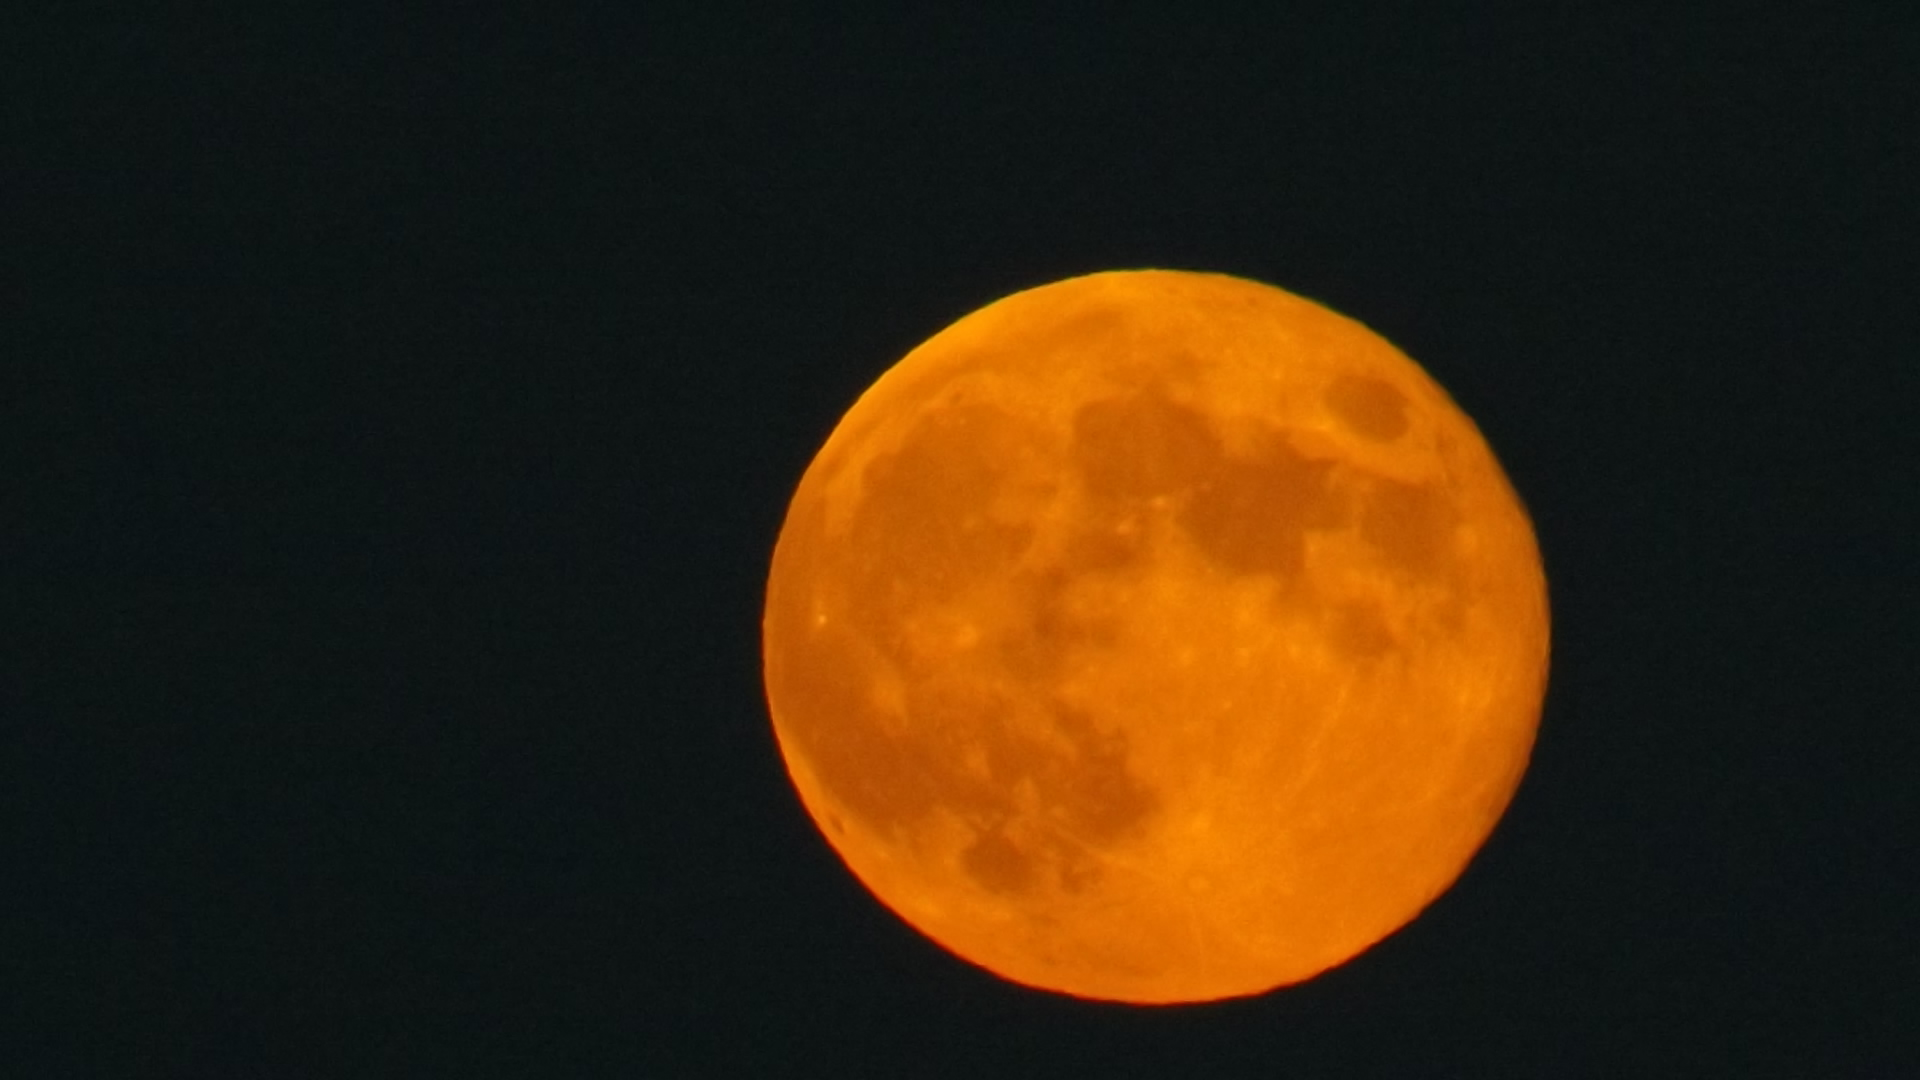 Blood moon from the April 15, 2014 lunar eclipse, supermoon, moon in perigee